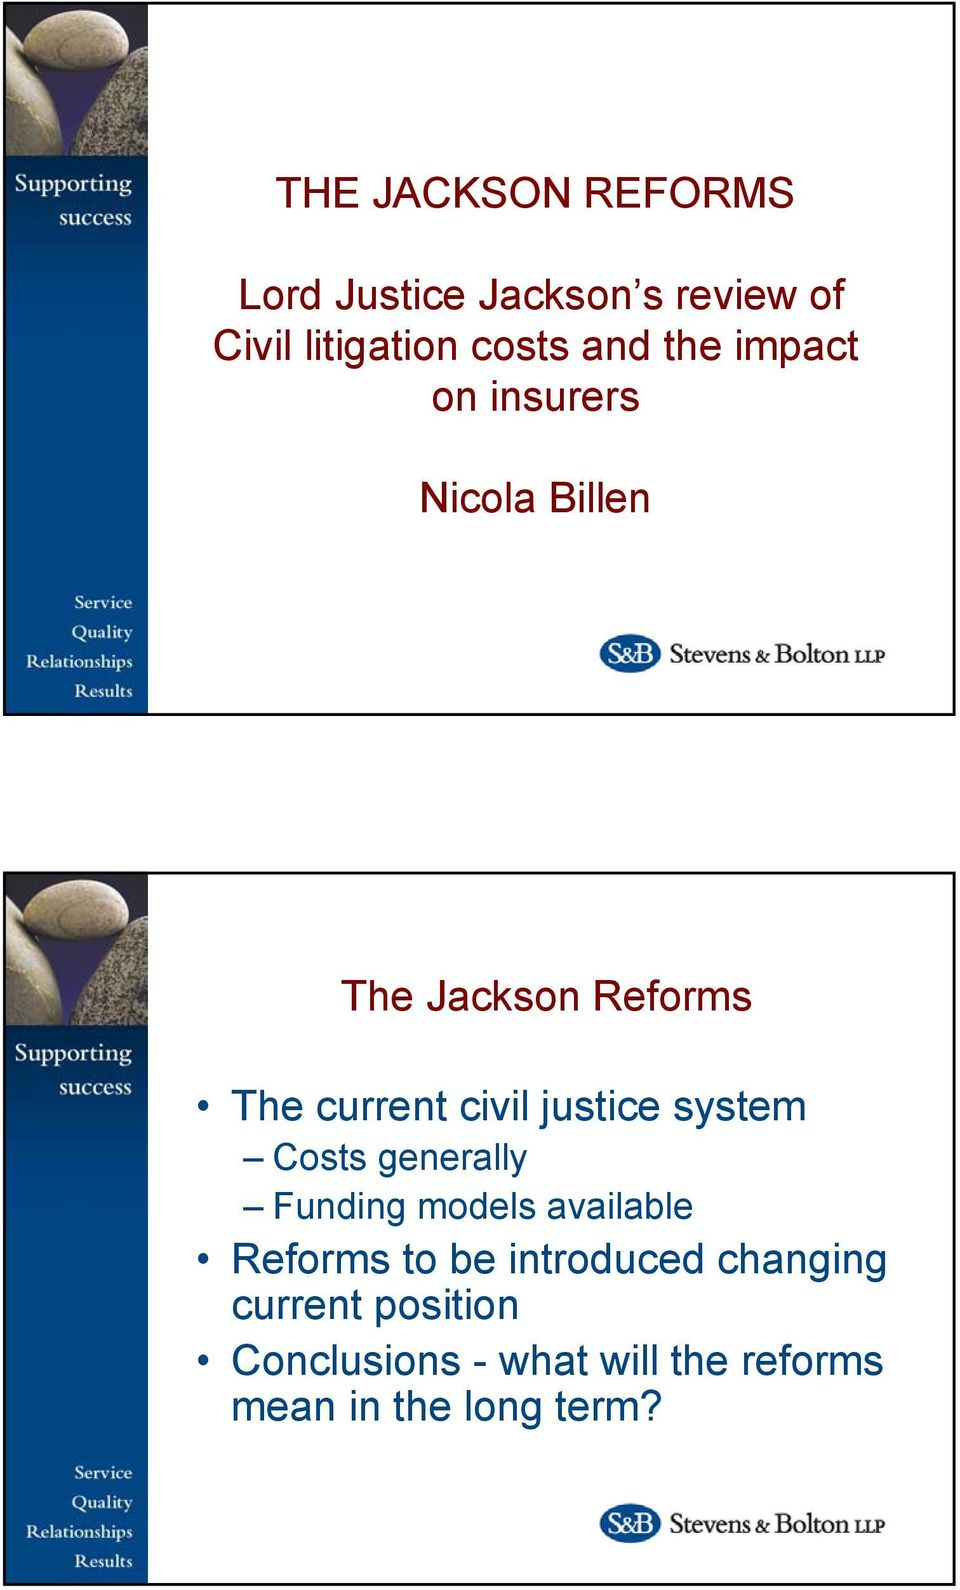 justice system Costs generally Funding models available Reforms to be